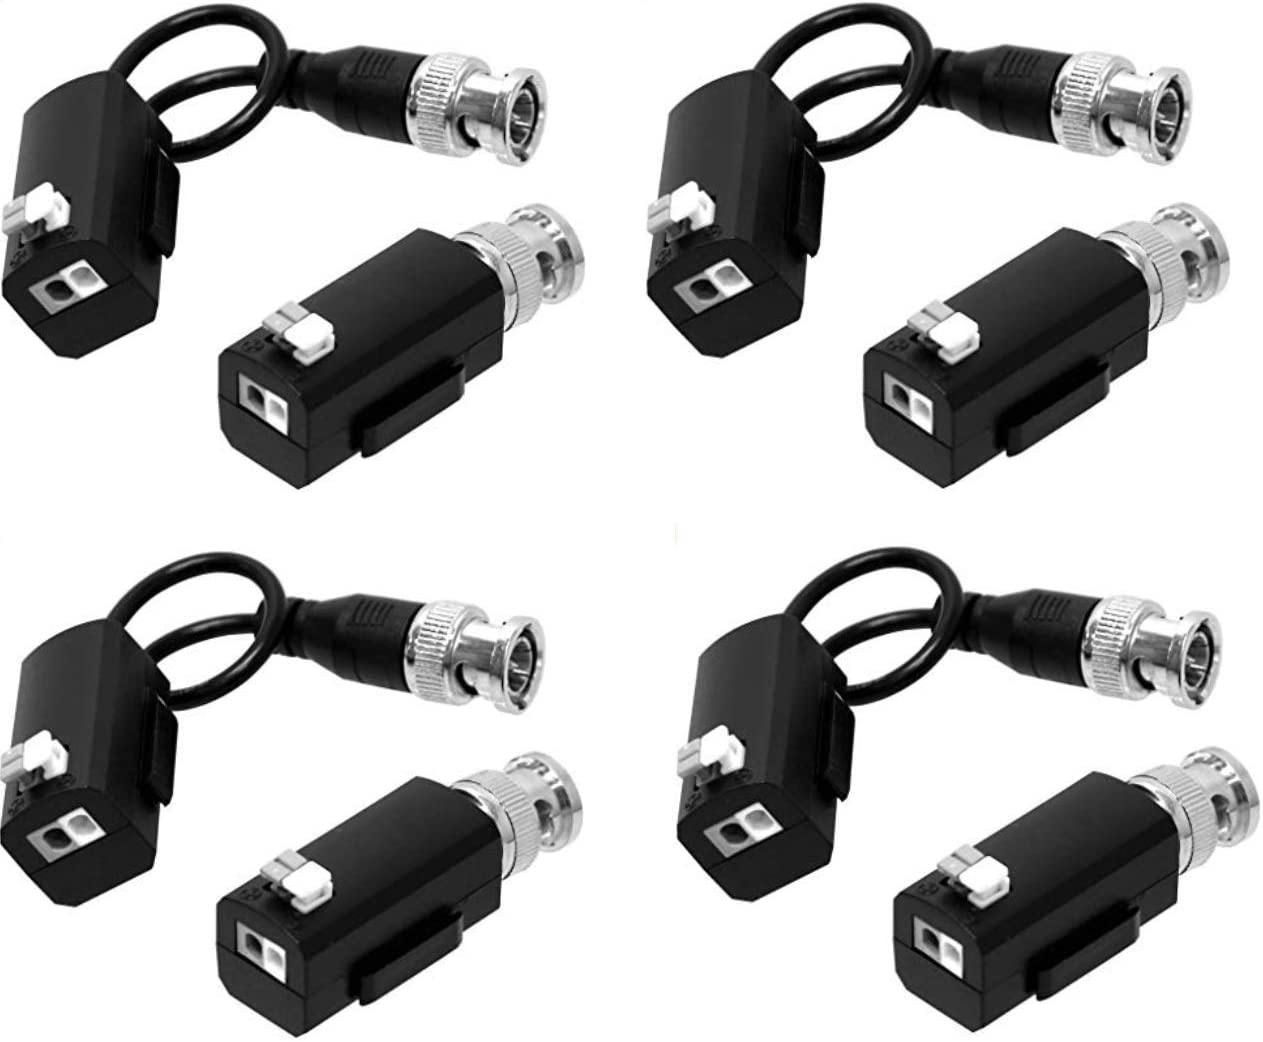 HDView Video Balun, HD-TVI/CVI/AHD/Analog/960H Passive Video Balun Tansceiver for 720P 1080P 3MP 4MP 5MP, HD Video Balun Transmitter (4 Pairs)